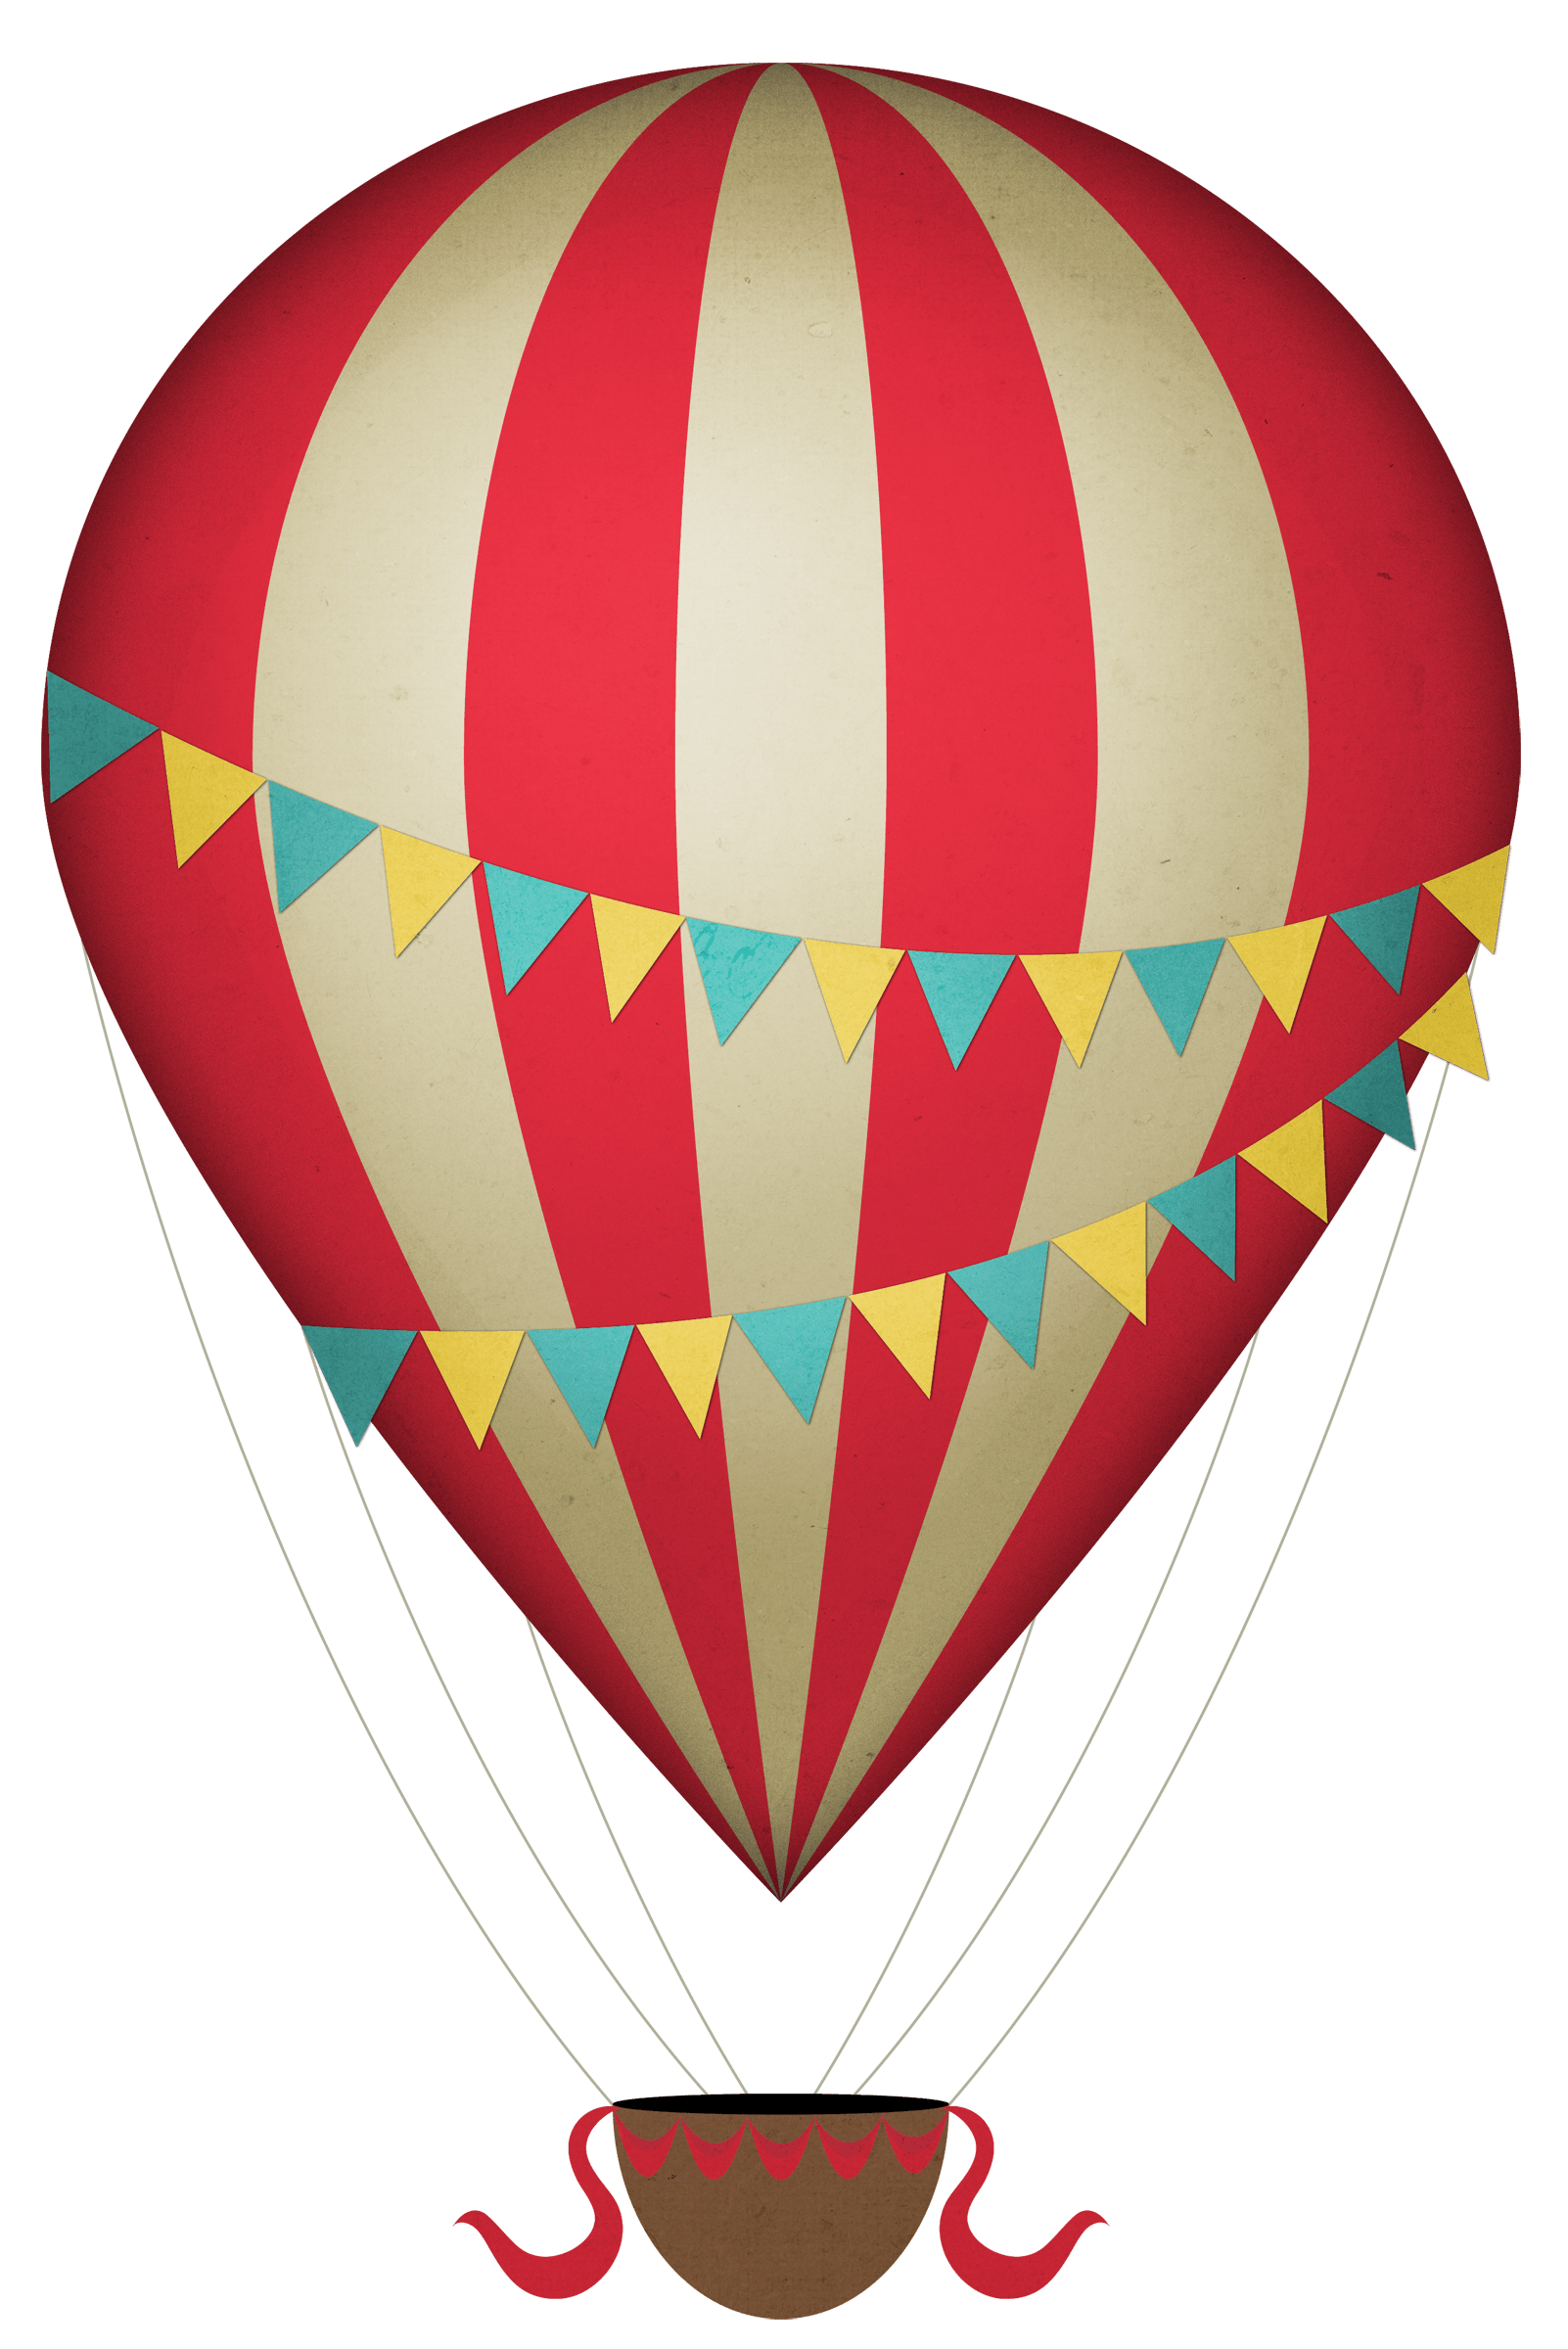 Vintage Clipart Hot Air Balloon transparent PNG.